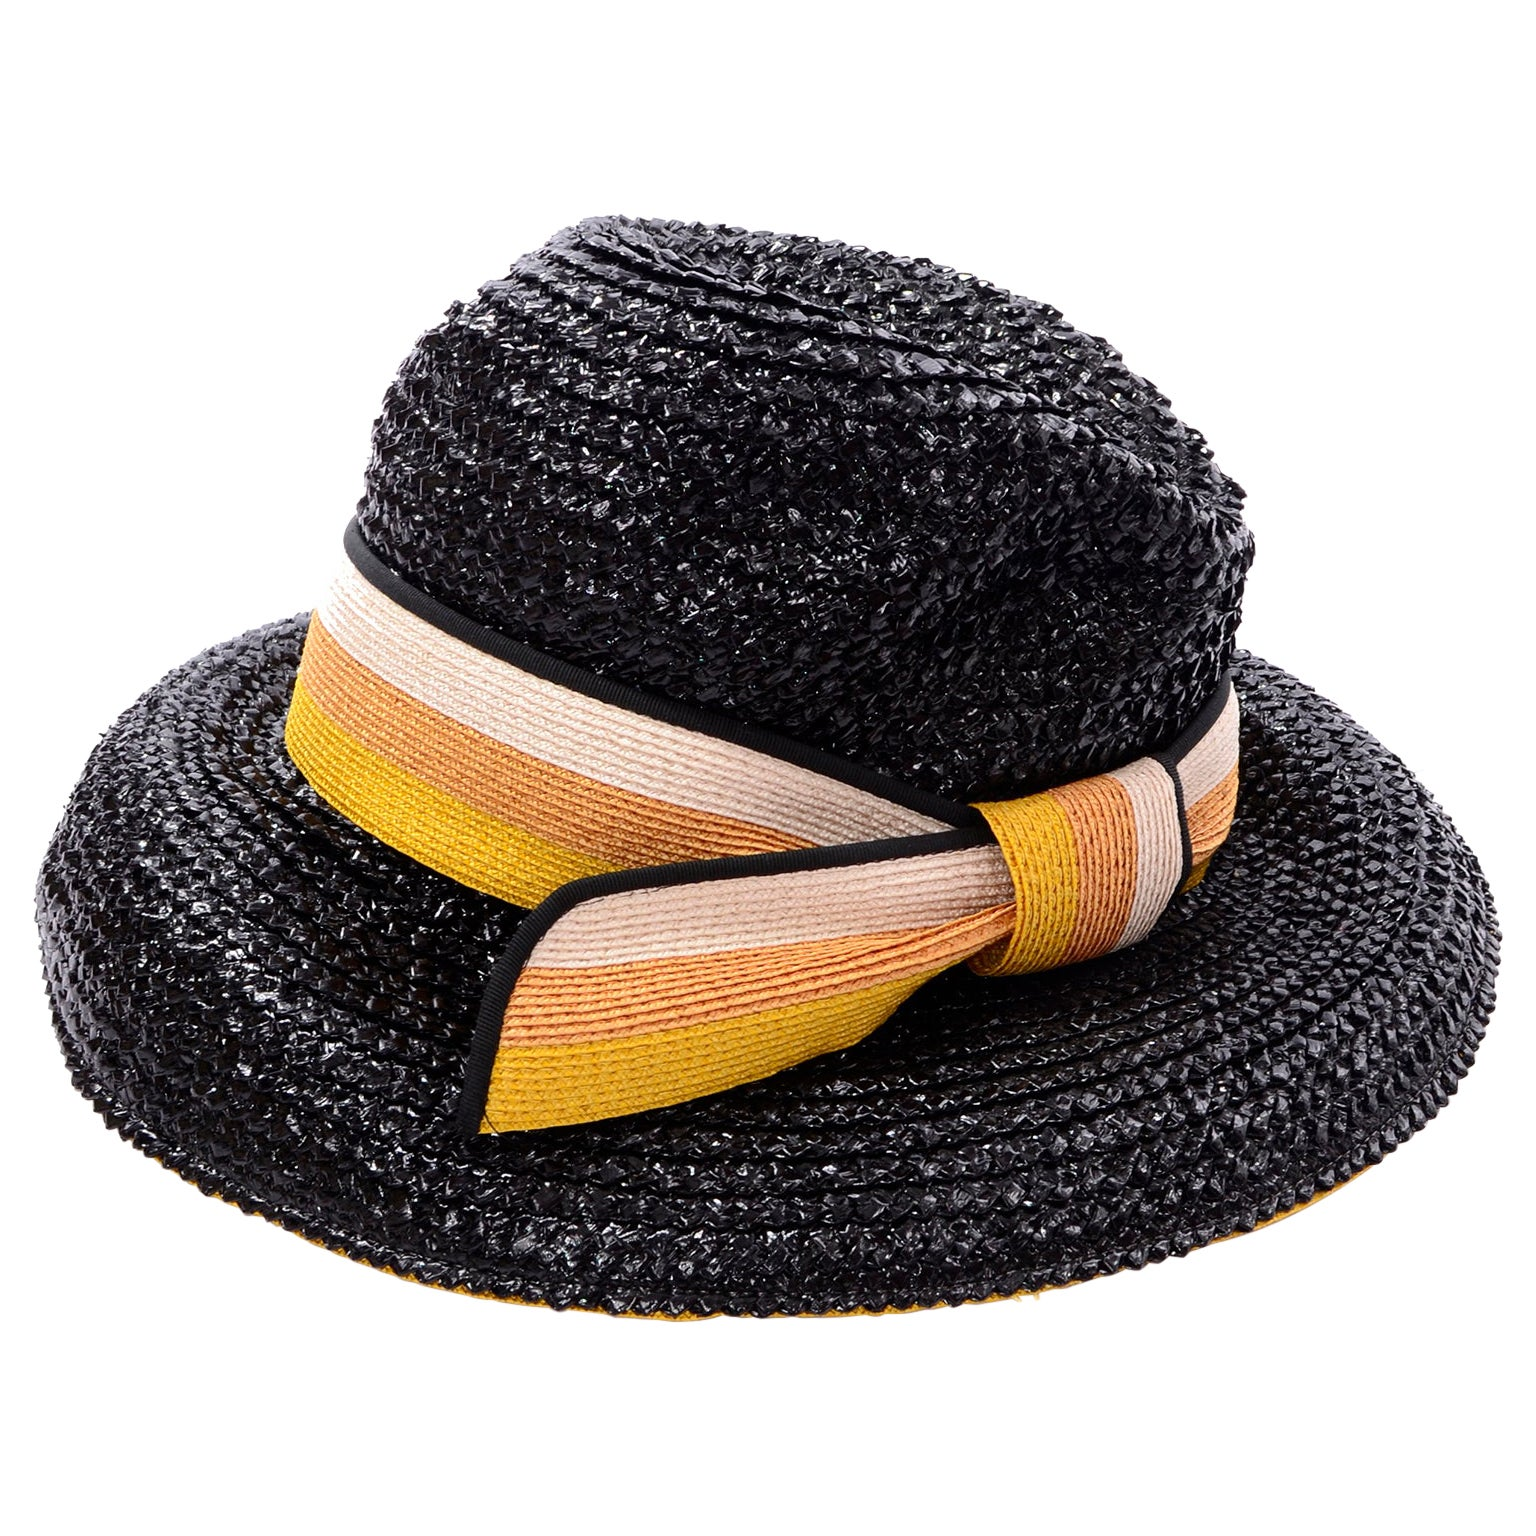 1960s Deadstock Vintage Yves Saint Laurent Straw Hat With Striped Ribbon W Tag